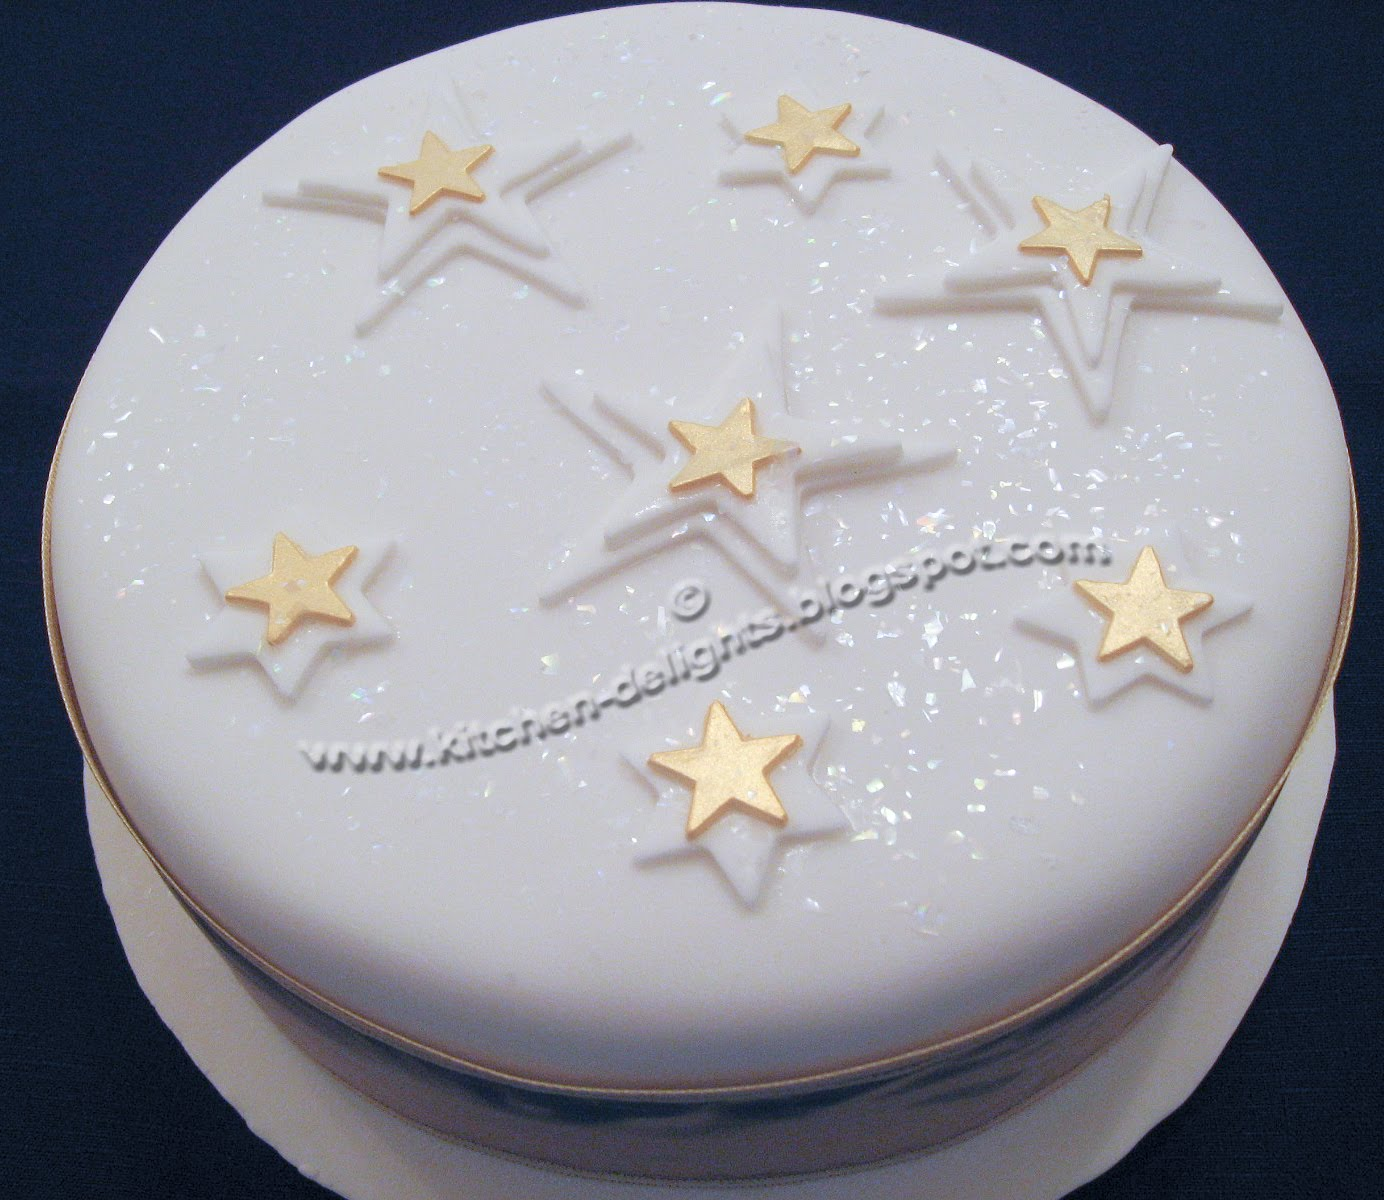 Iced Christmas Cake Nz